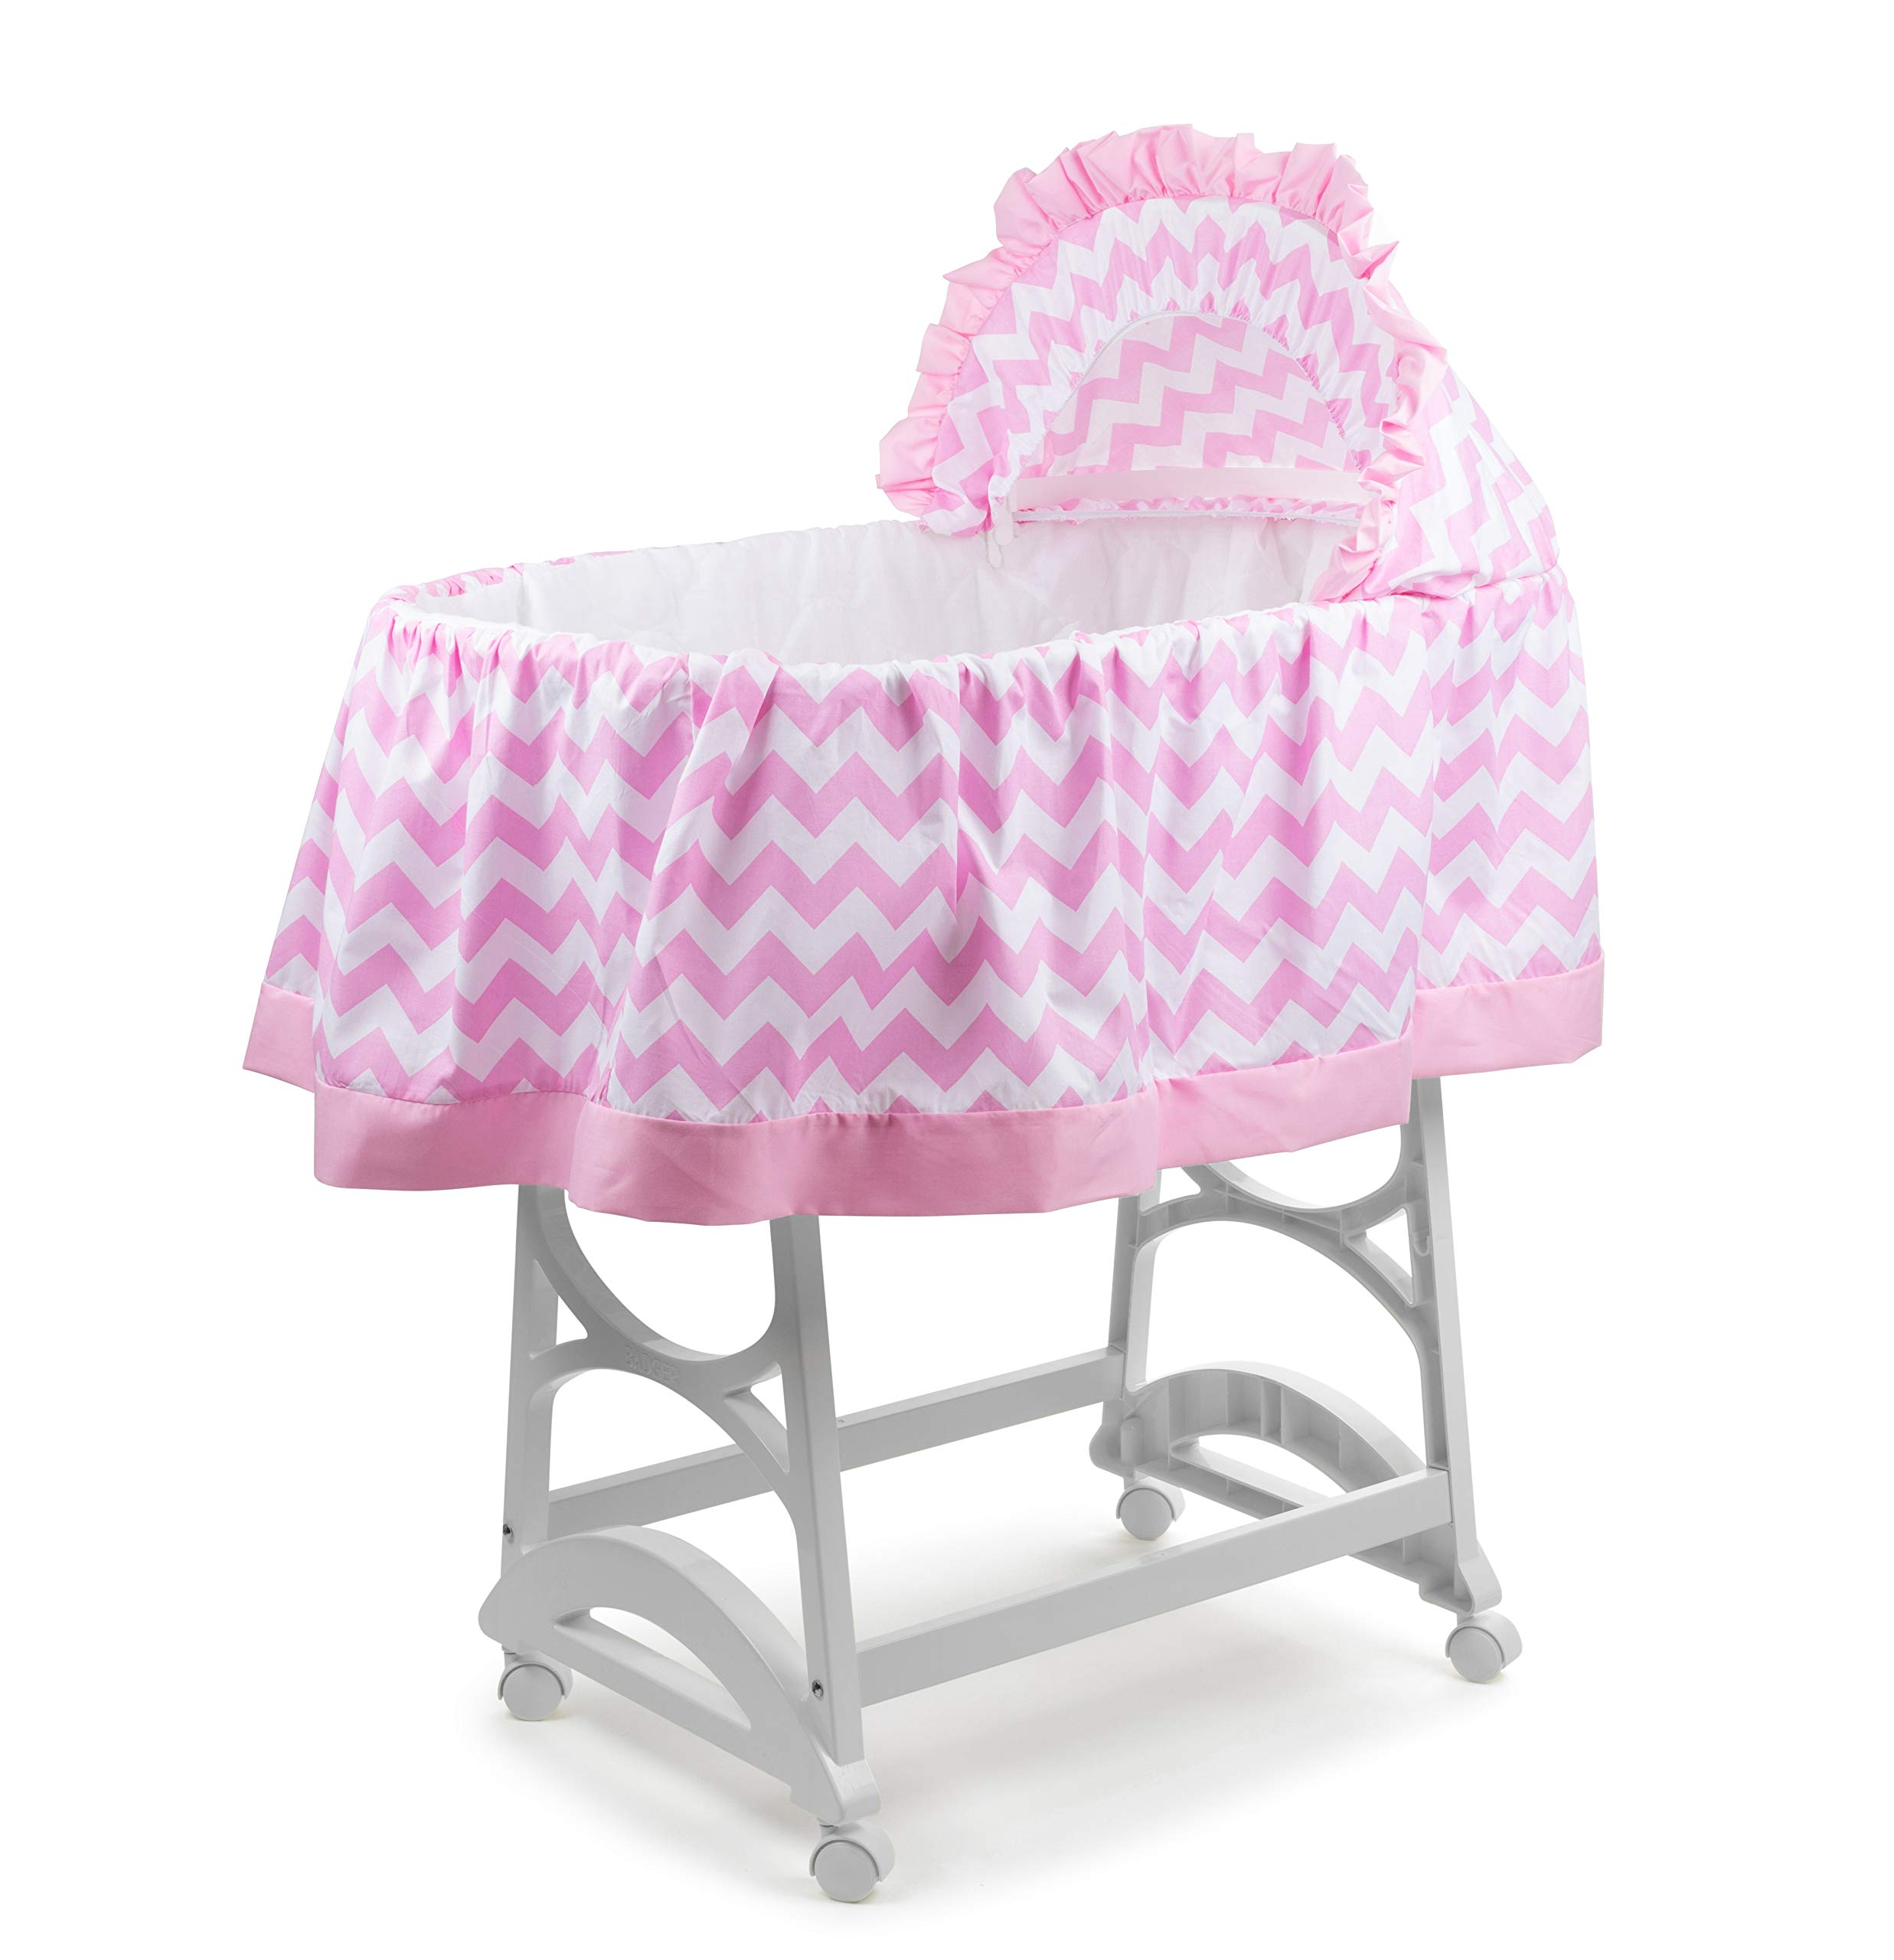 aBaby Chevron Short Bassinet Skirt, Pink, Large by Ababy